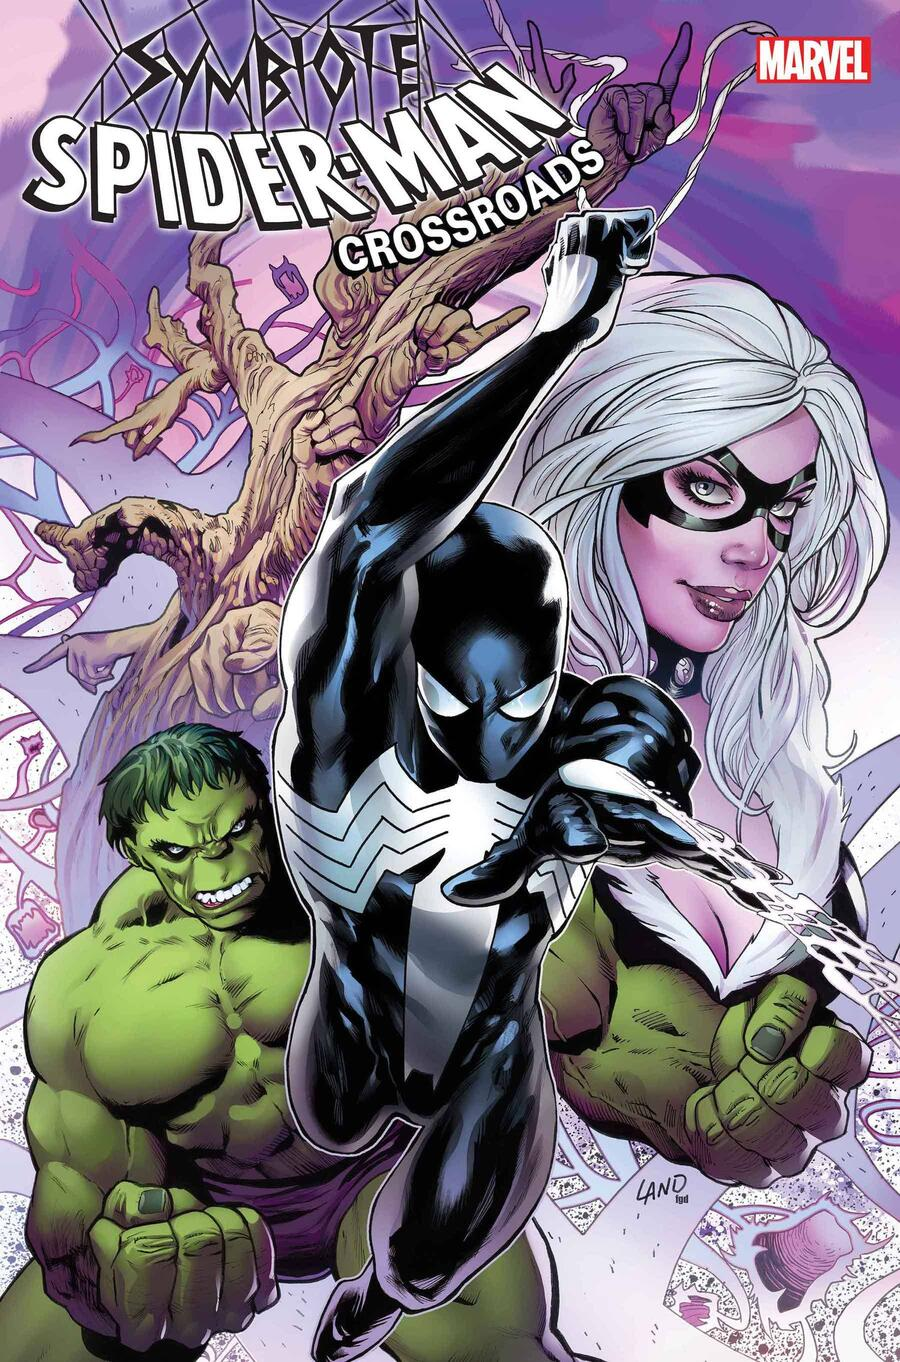 SYMBIOTE SPIDER-MAN: CROSSROADS #1 cover by Greg Land